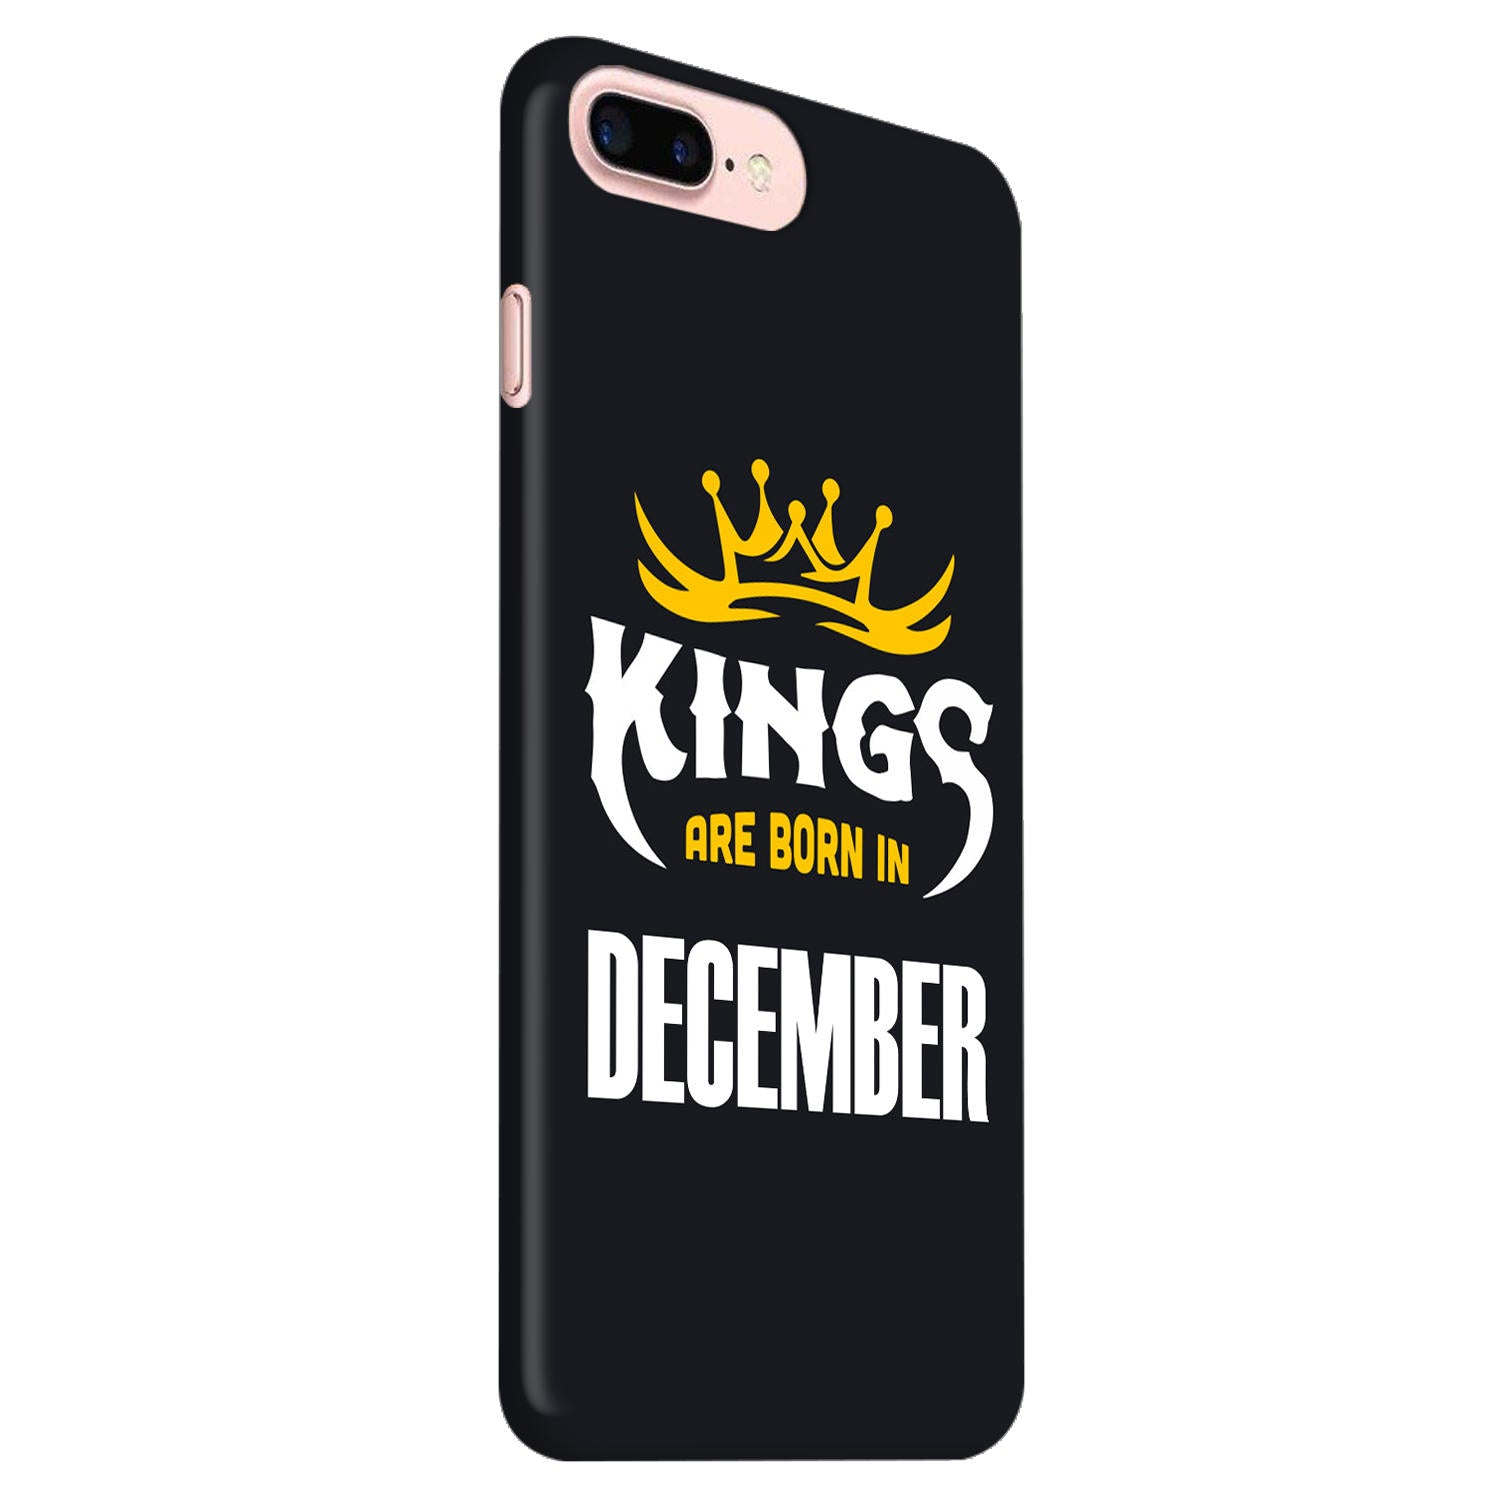 Kings December - Narcissist iPhone 7 Plus Mobile Cover Case - MADANYU